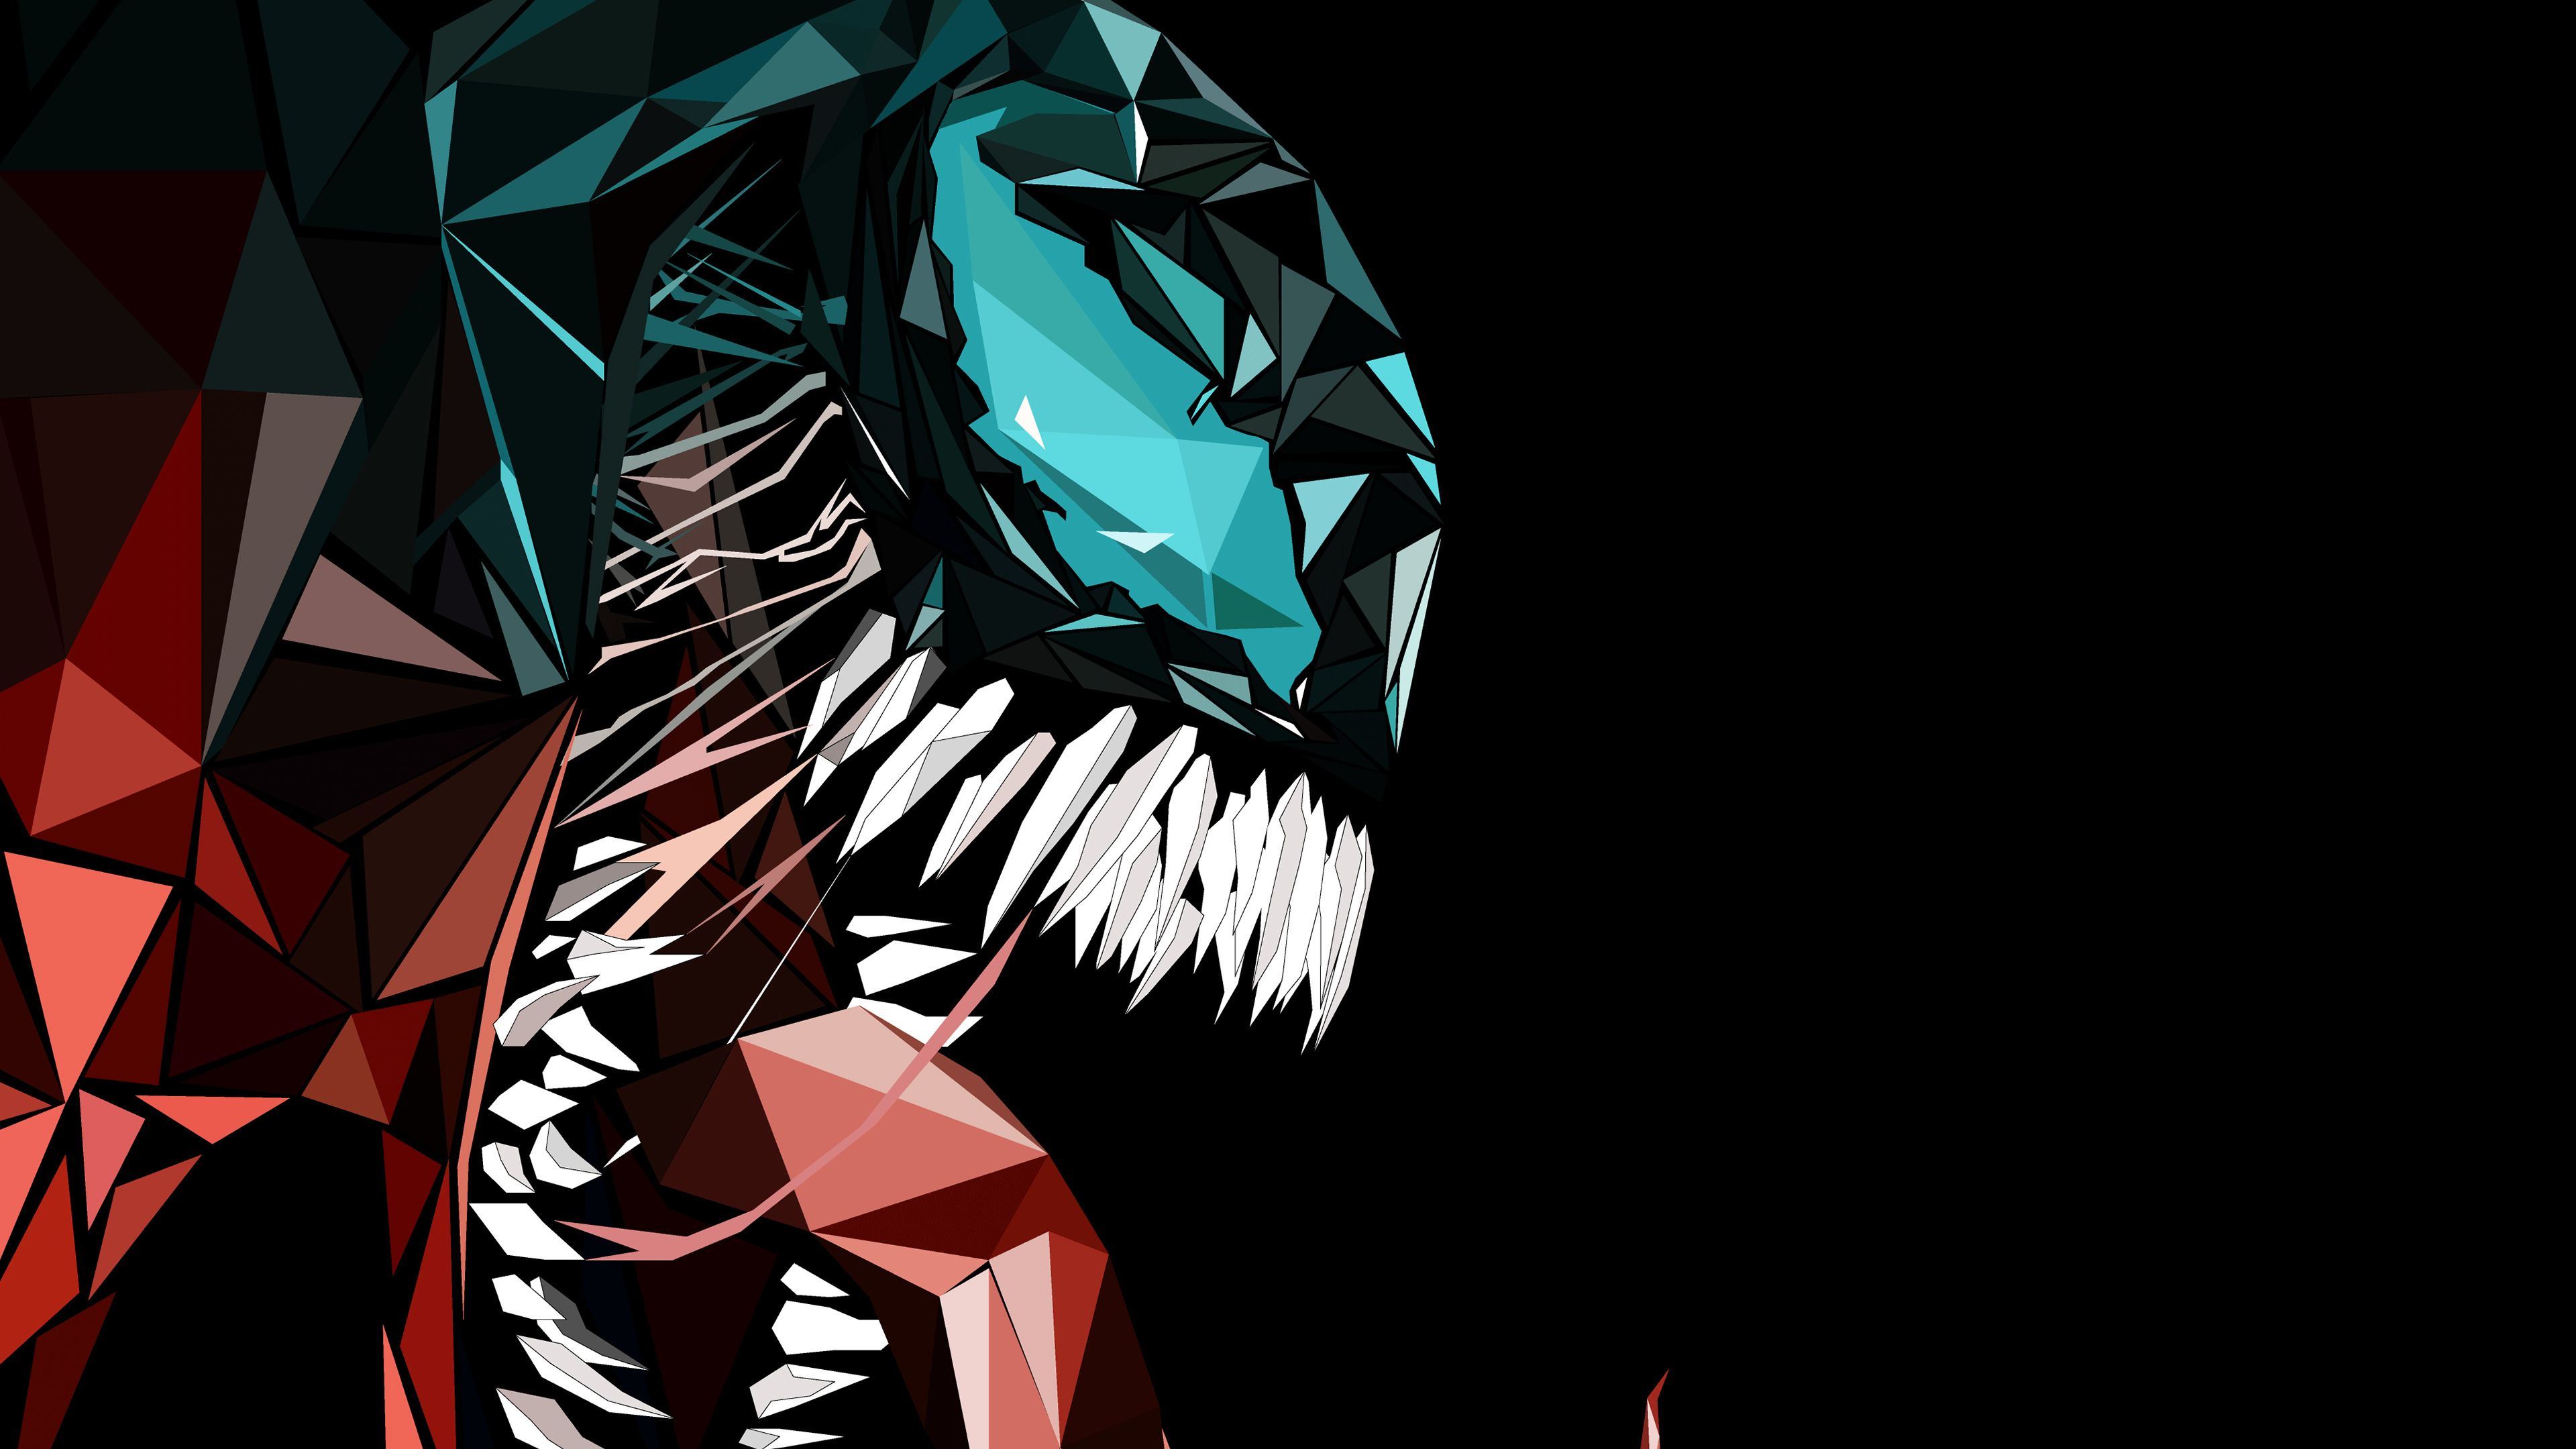 Venom Abstract 4k Venom Wallpapers Superheroes Wallpapers Hd Wallpapers Digital Art Wallpapers Behance W Marvel Wallpaper Hd Marvel Wallpaper Art Wallpaper